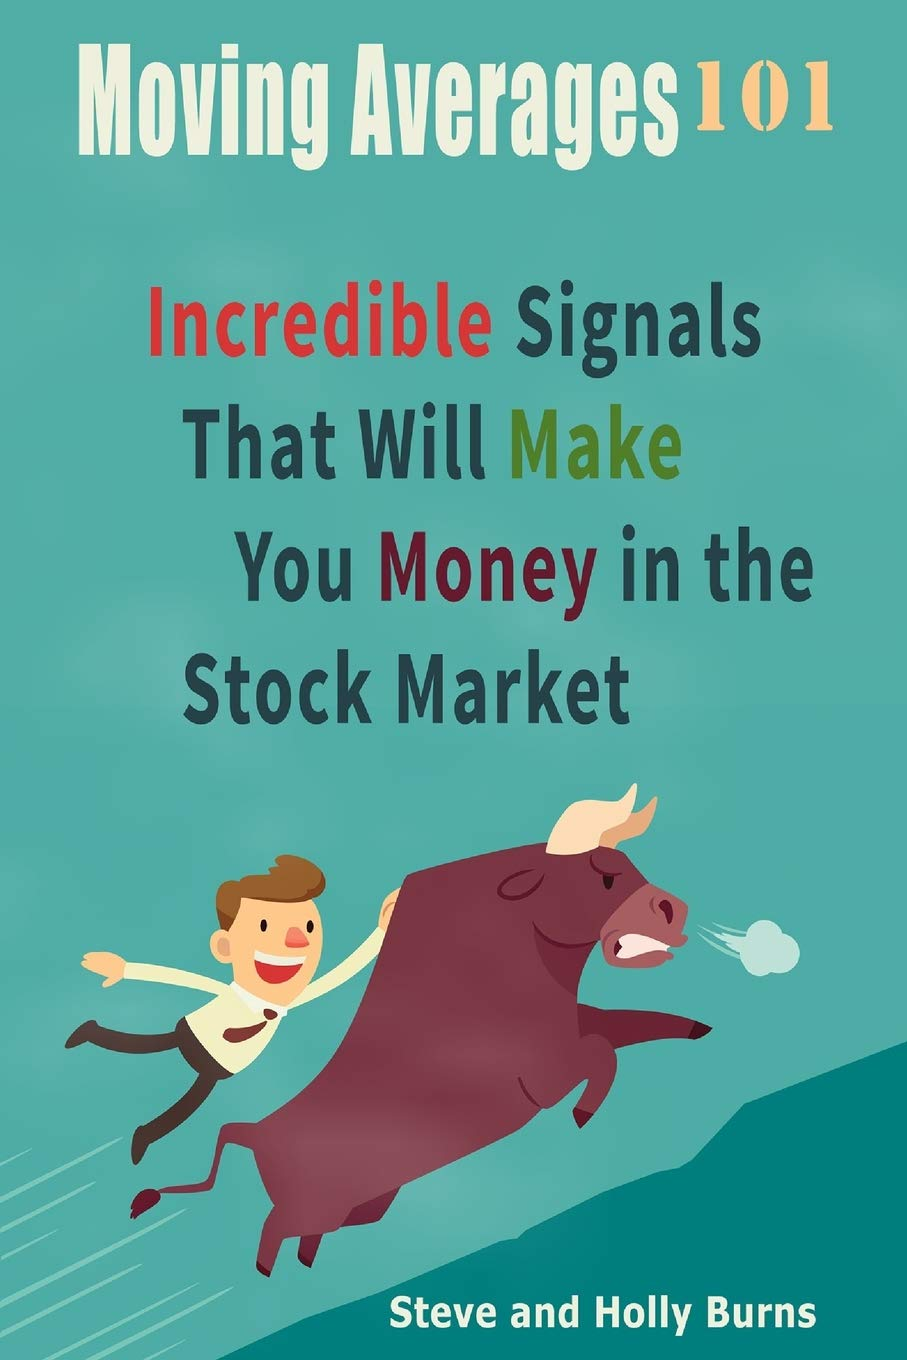 Moving Averages 101: Incredible Signals That Will Make You Money in ...